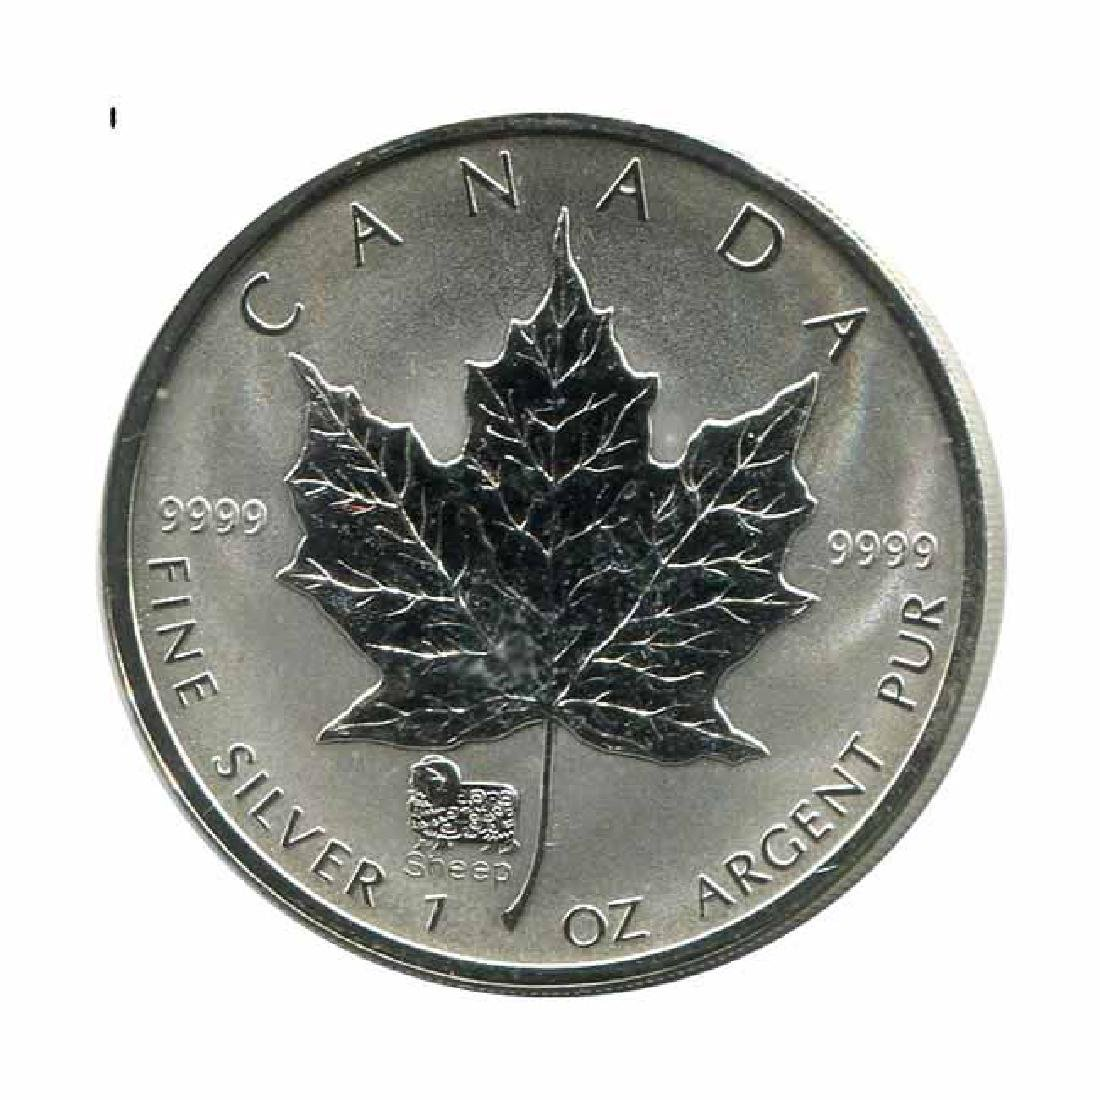 2003 Canada 1 oz. Silver Maple Leaf Reverse Proof Sheep